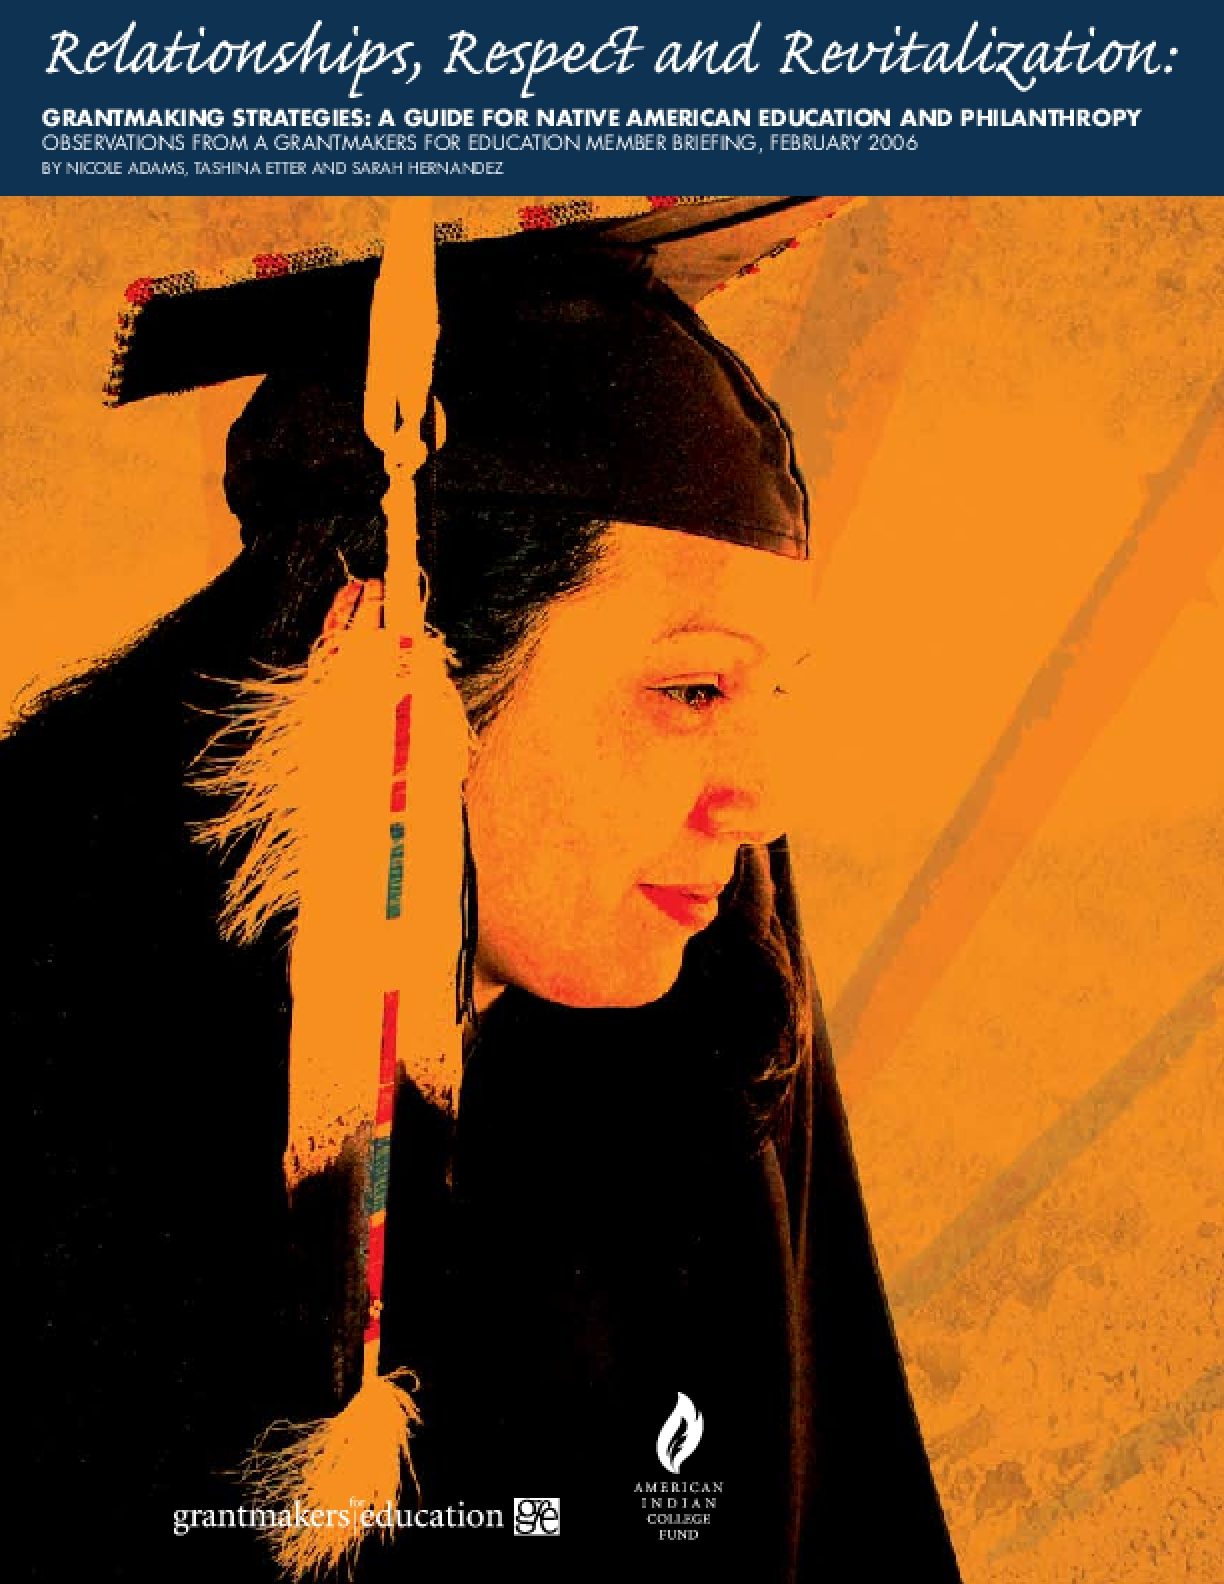 Relationships, Respect and Revitalization, Grantmaking Strategies: A Guide for Native American Education and Philanthropy